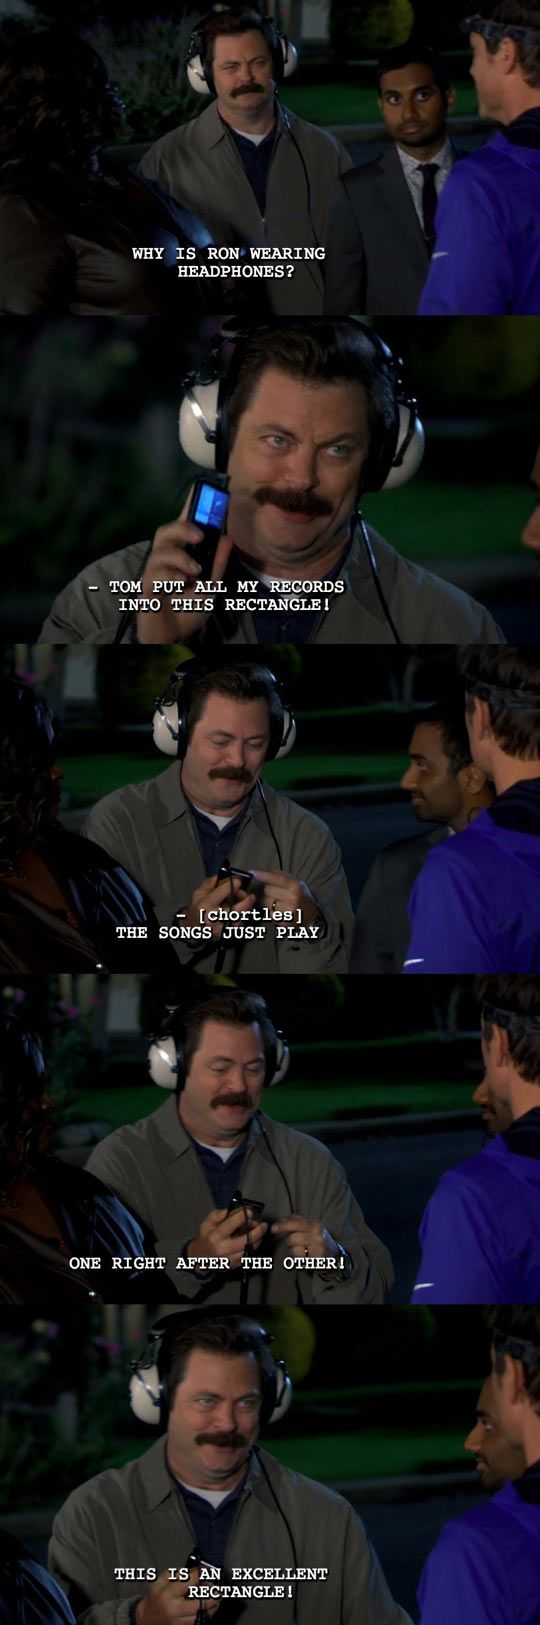 Ron Swanson's rectangle. I don't watch parks and rec, but I love this.